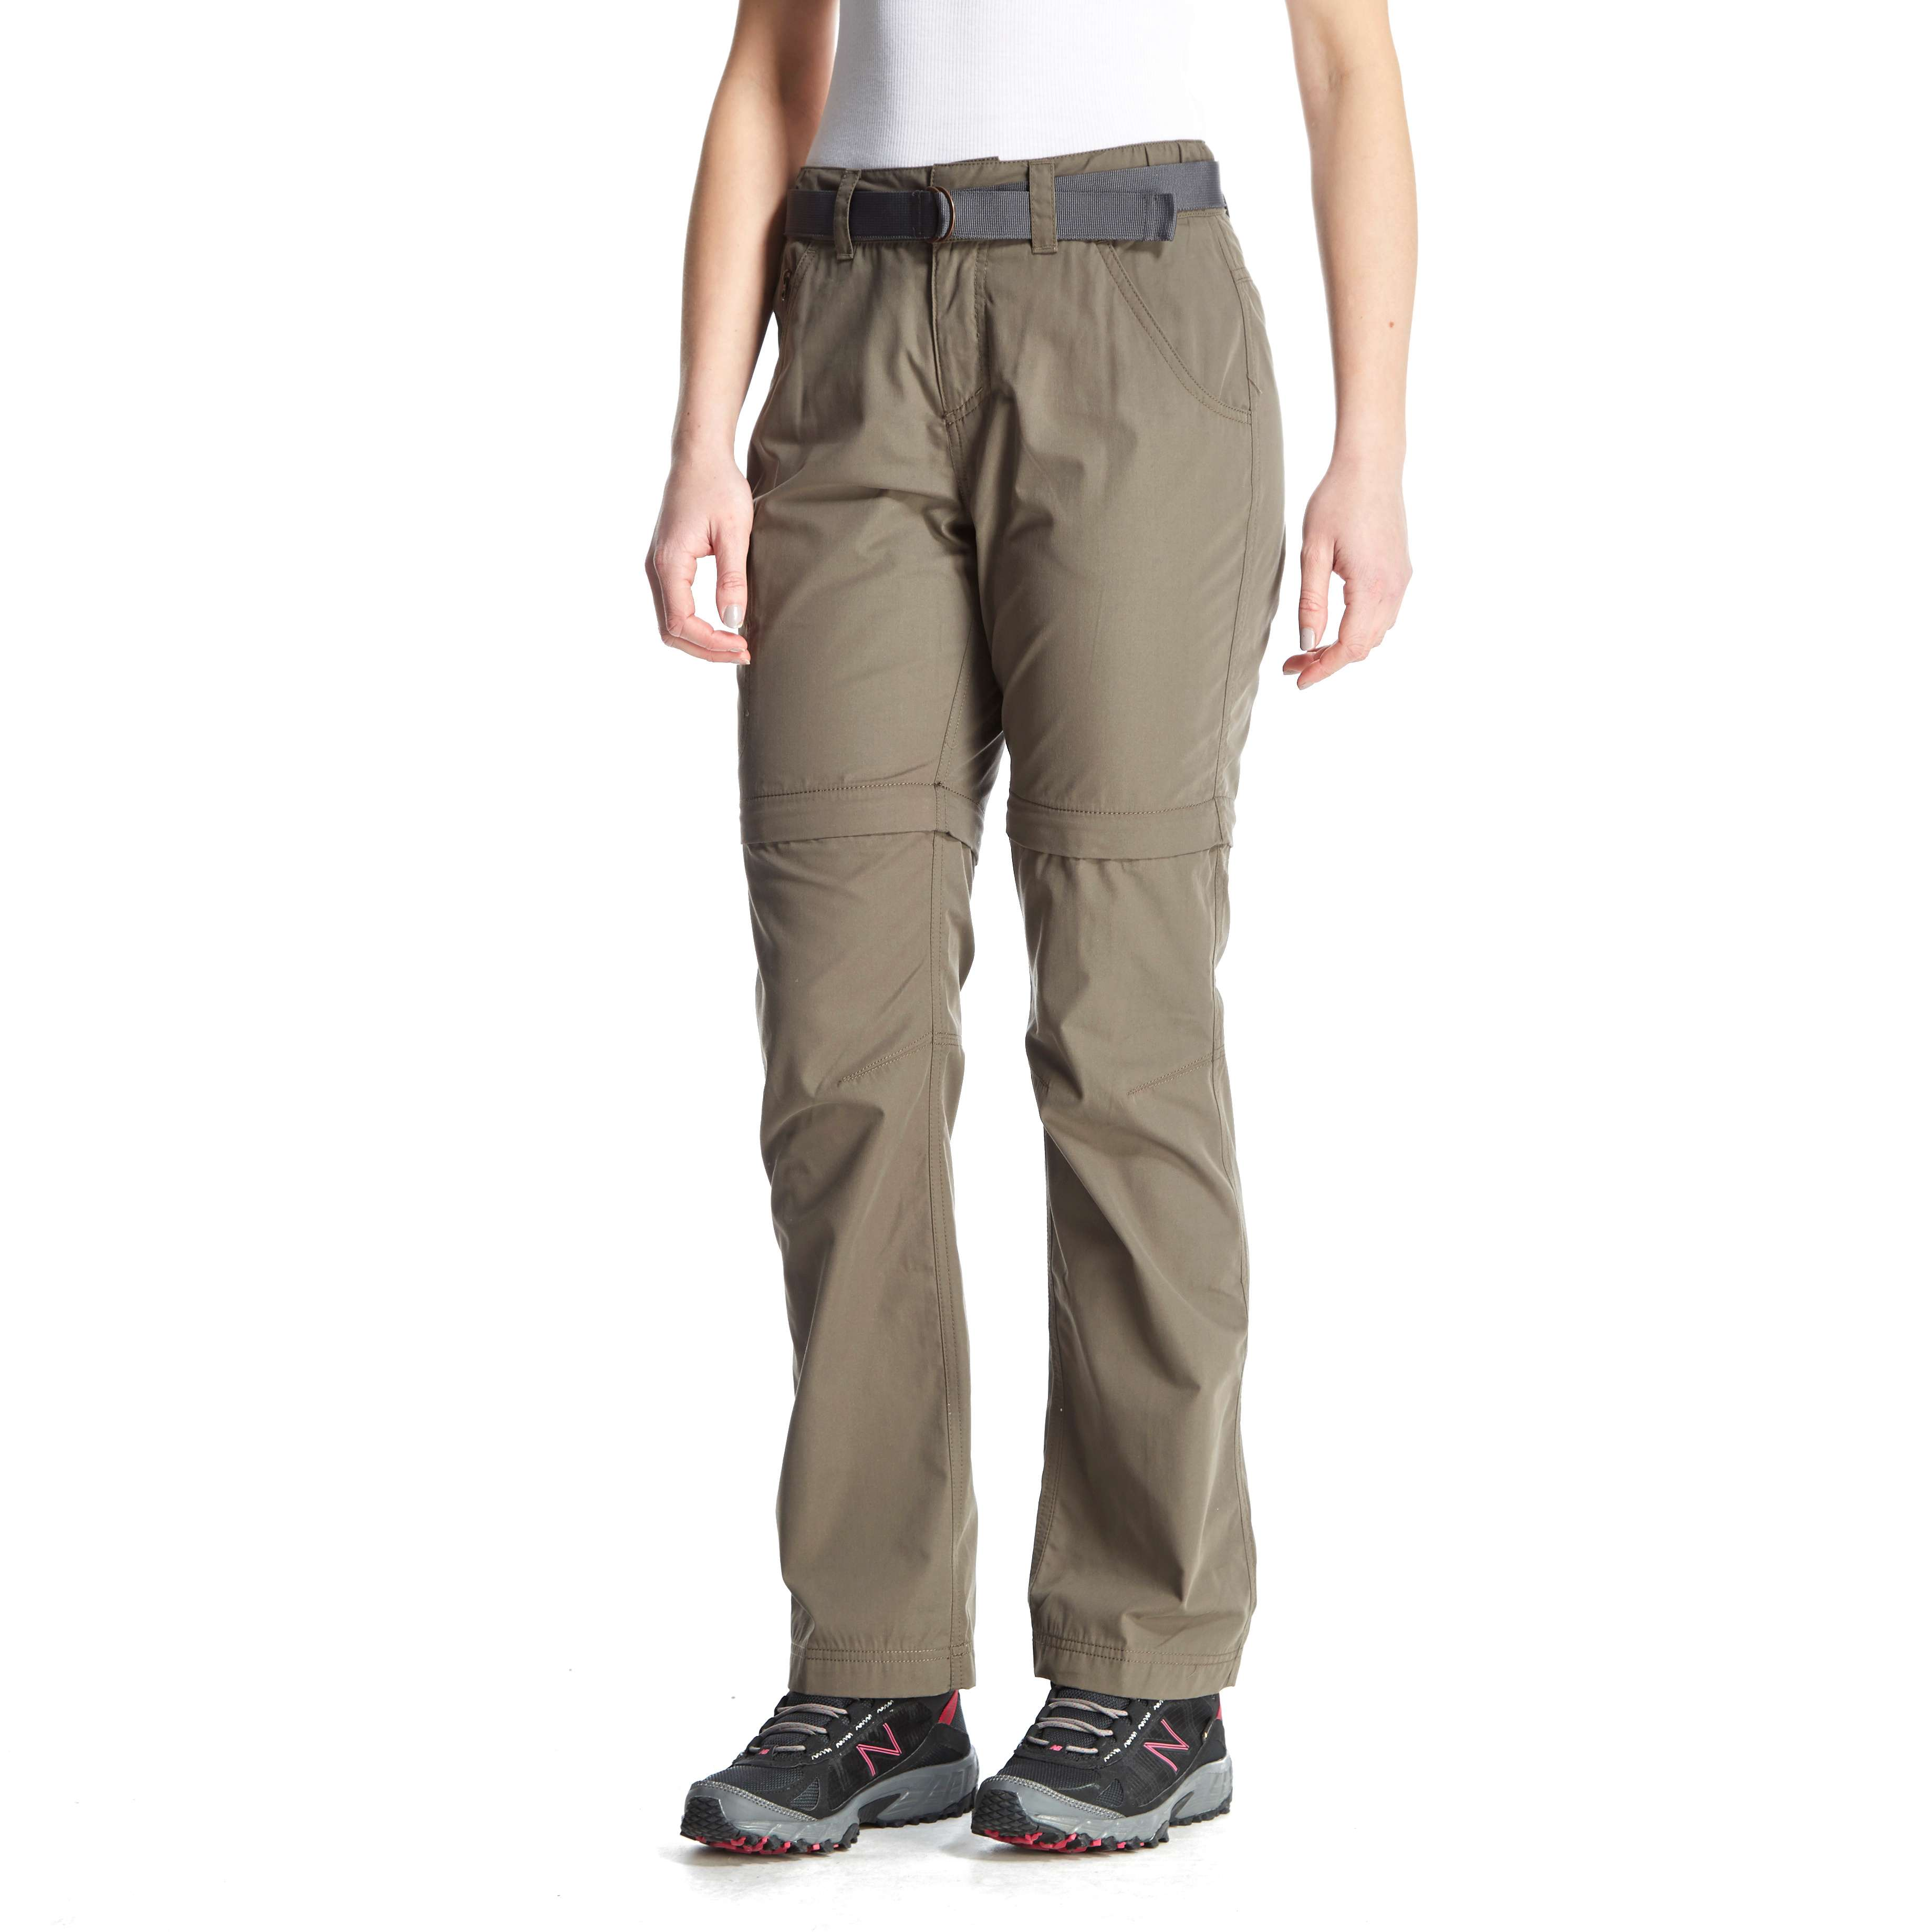 BRASHER Women's Grisedale Zip Off Pants